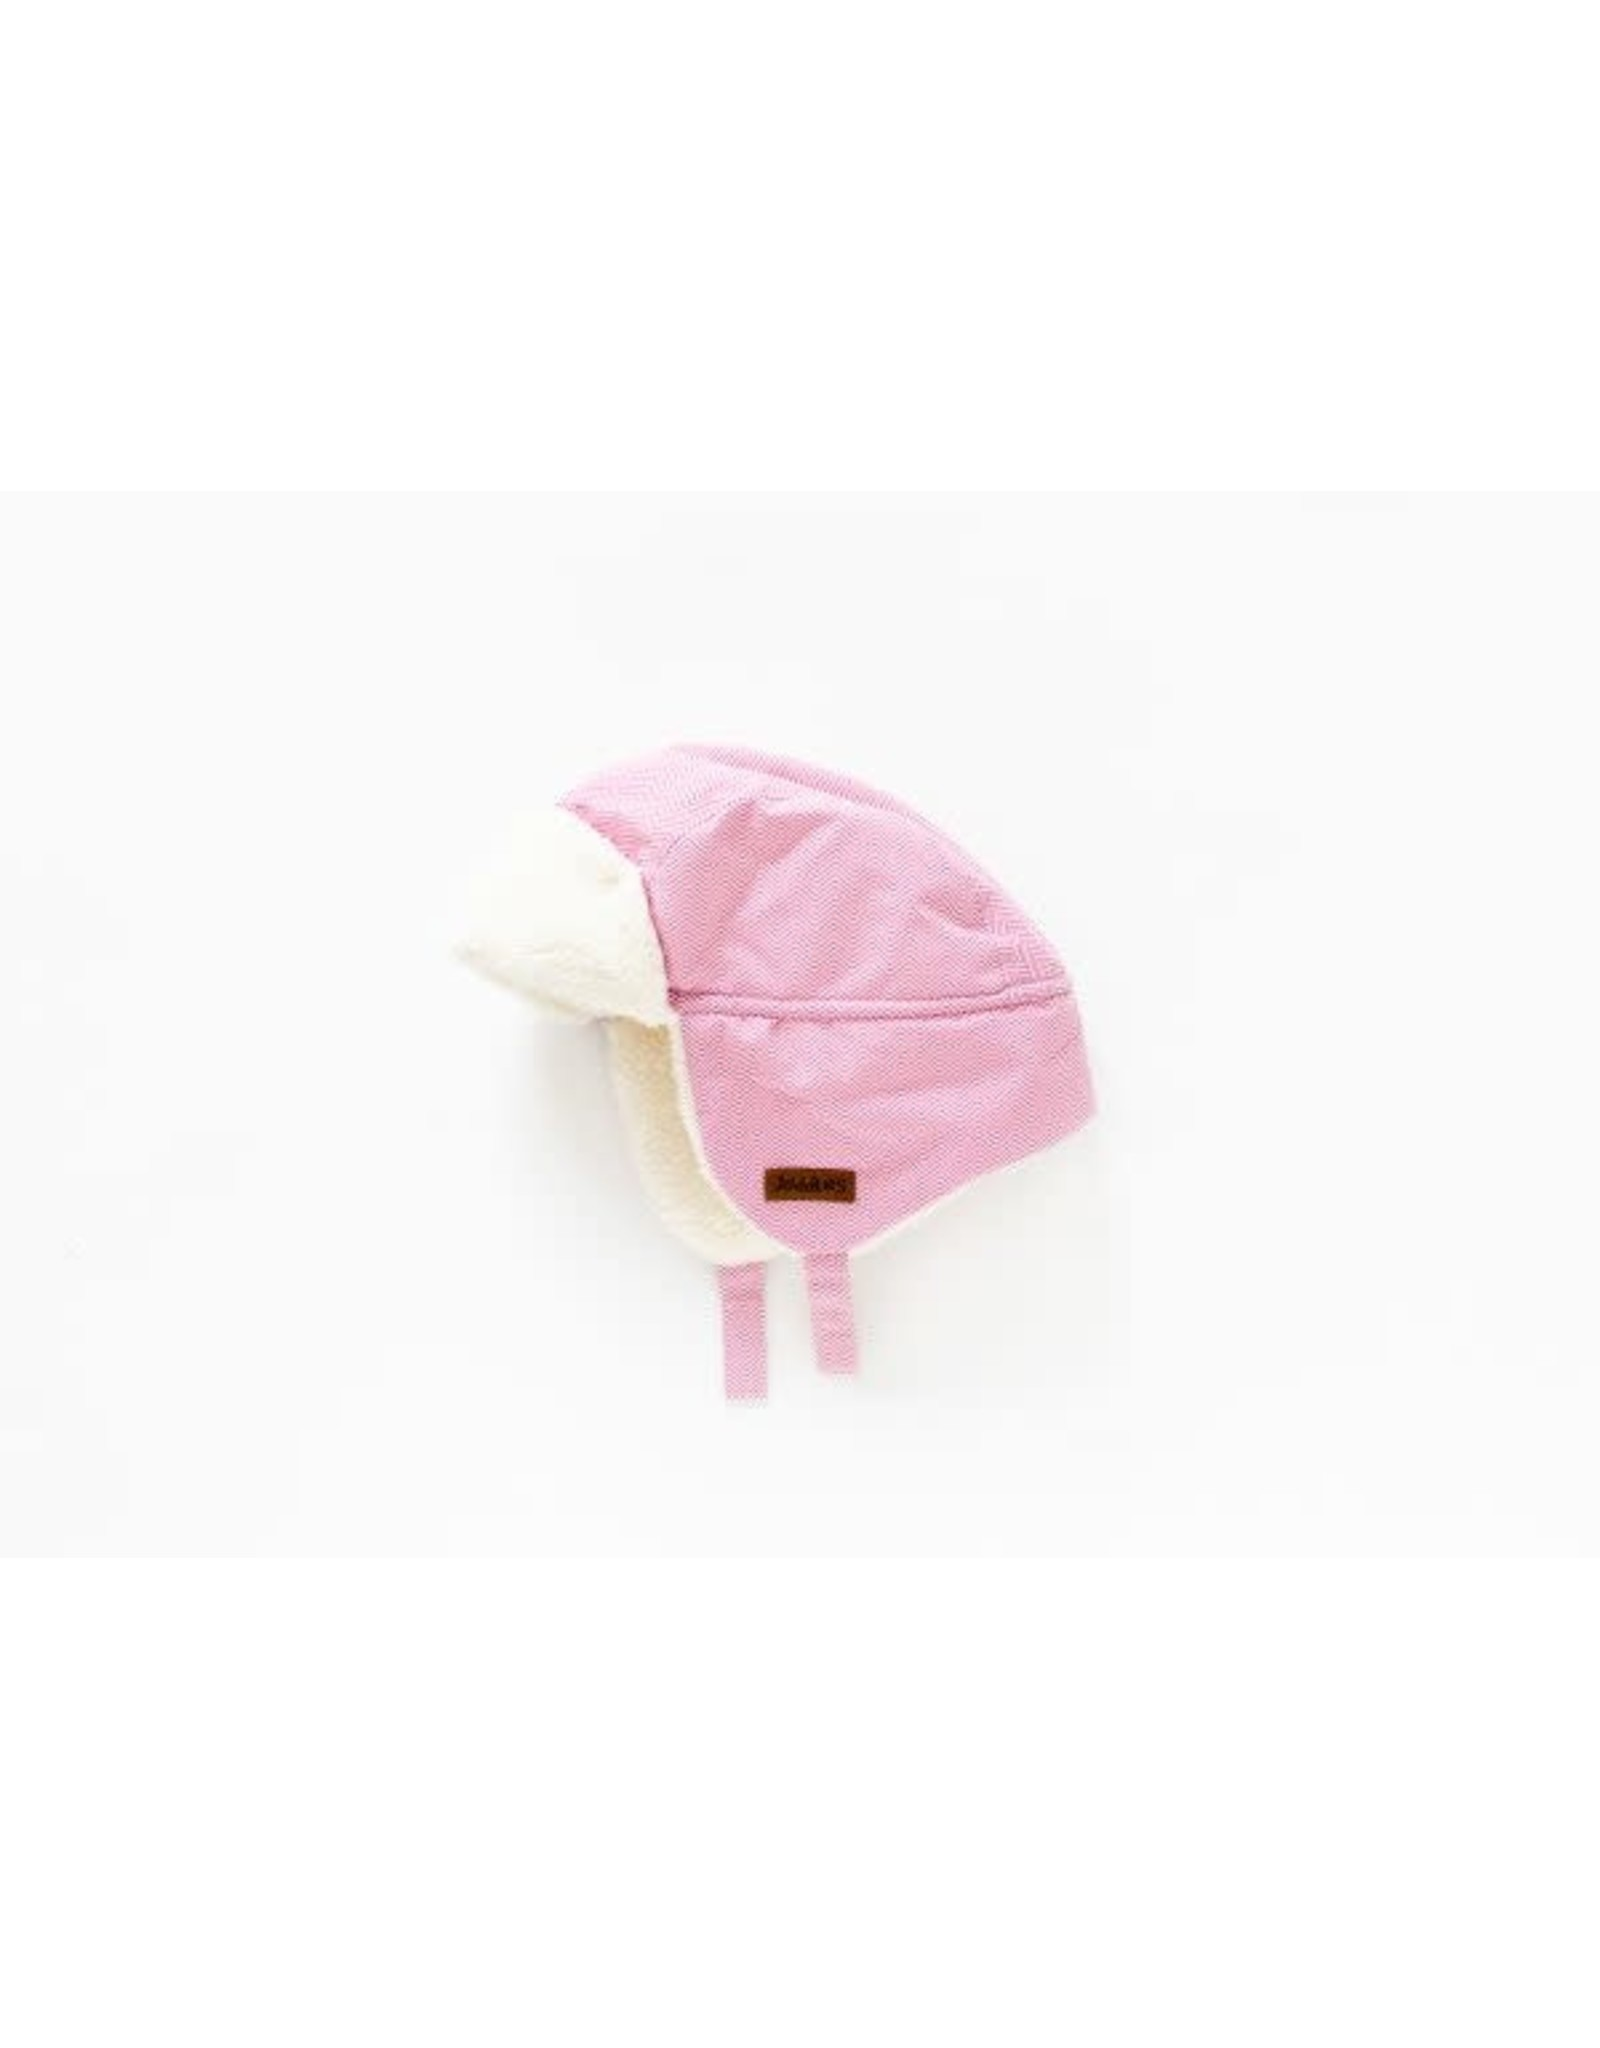 Juddlies Juddlies Winter Hat Herringbone Pink 6-12M